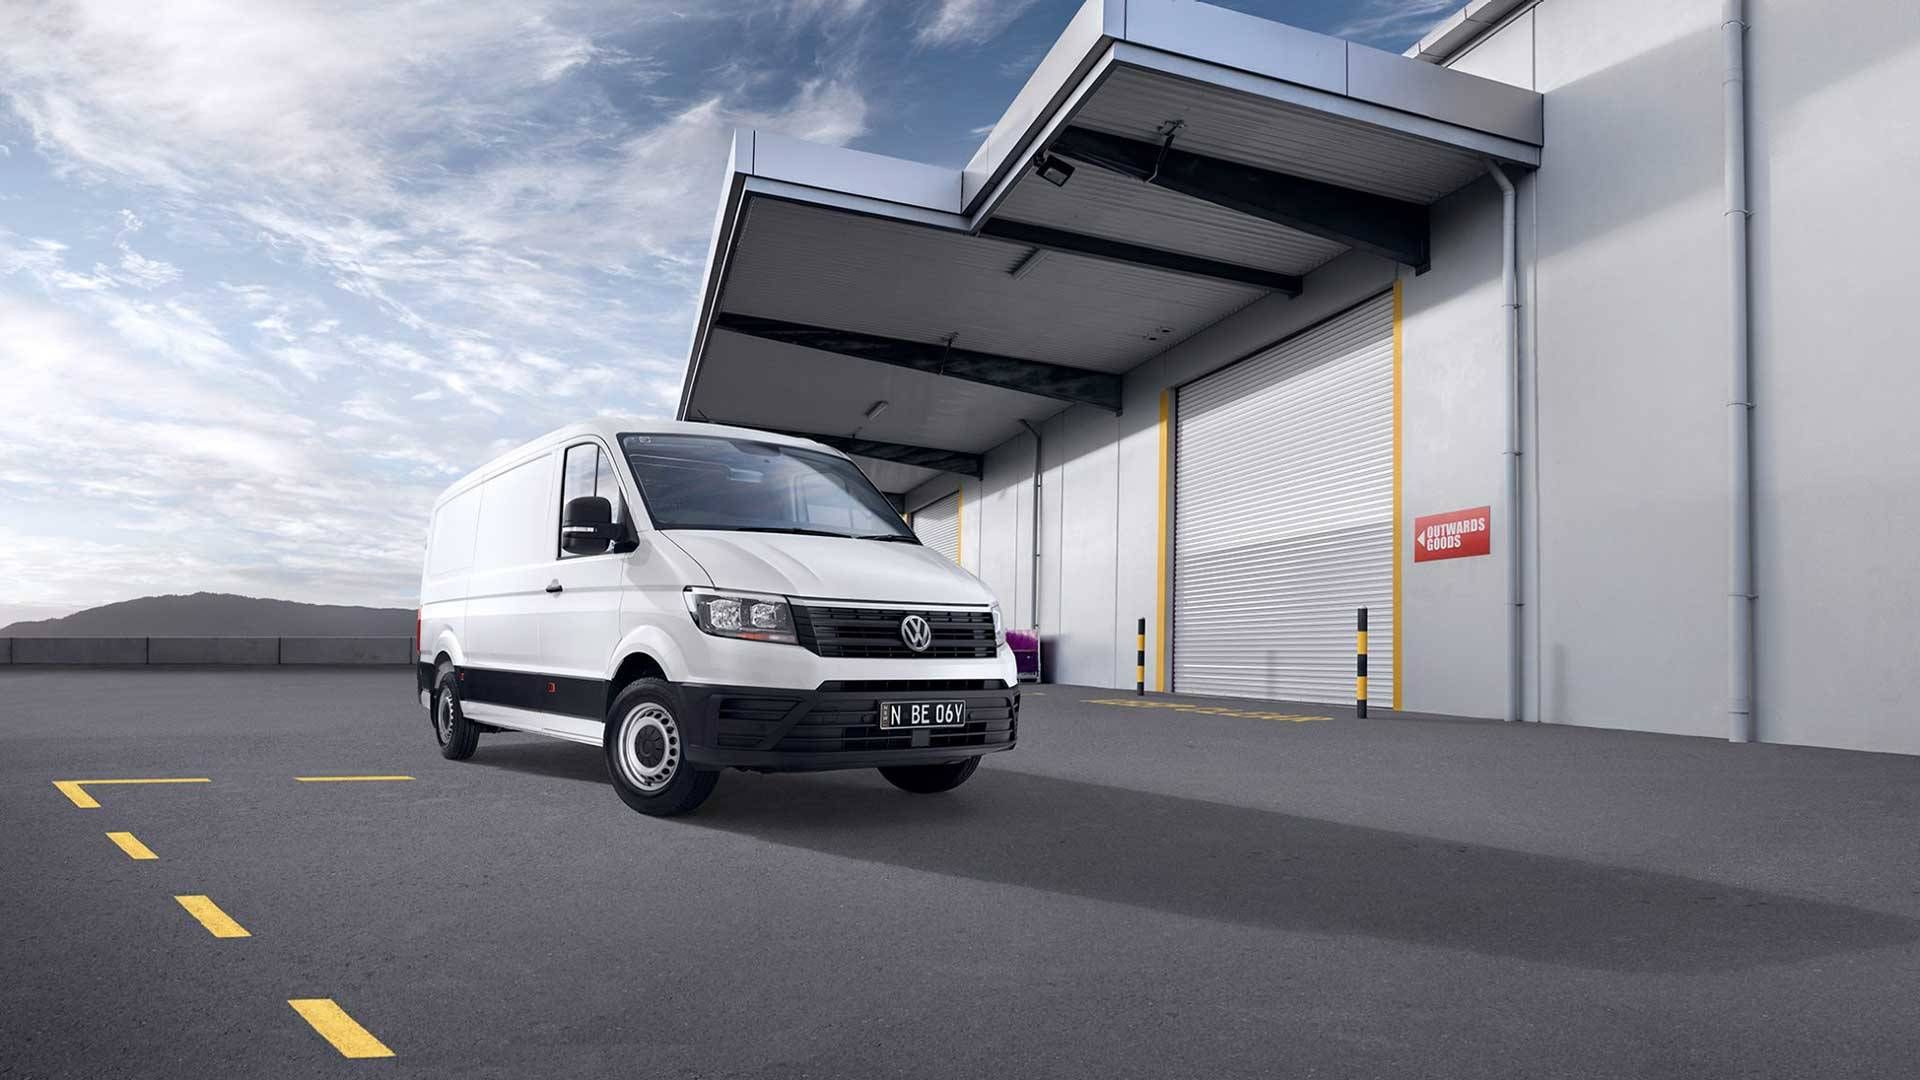 Pure White Crafter Van loading near Loading Dock